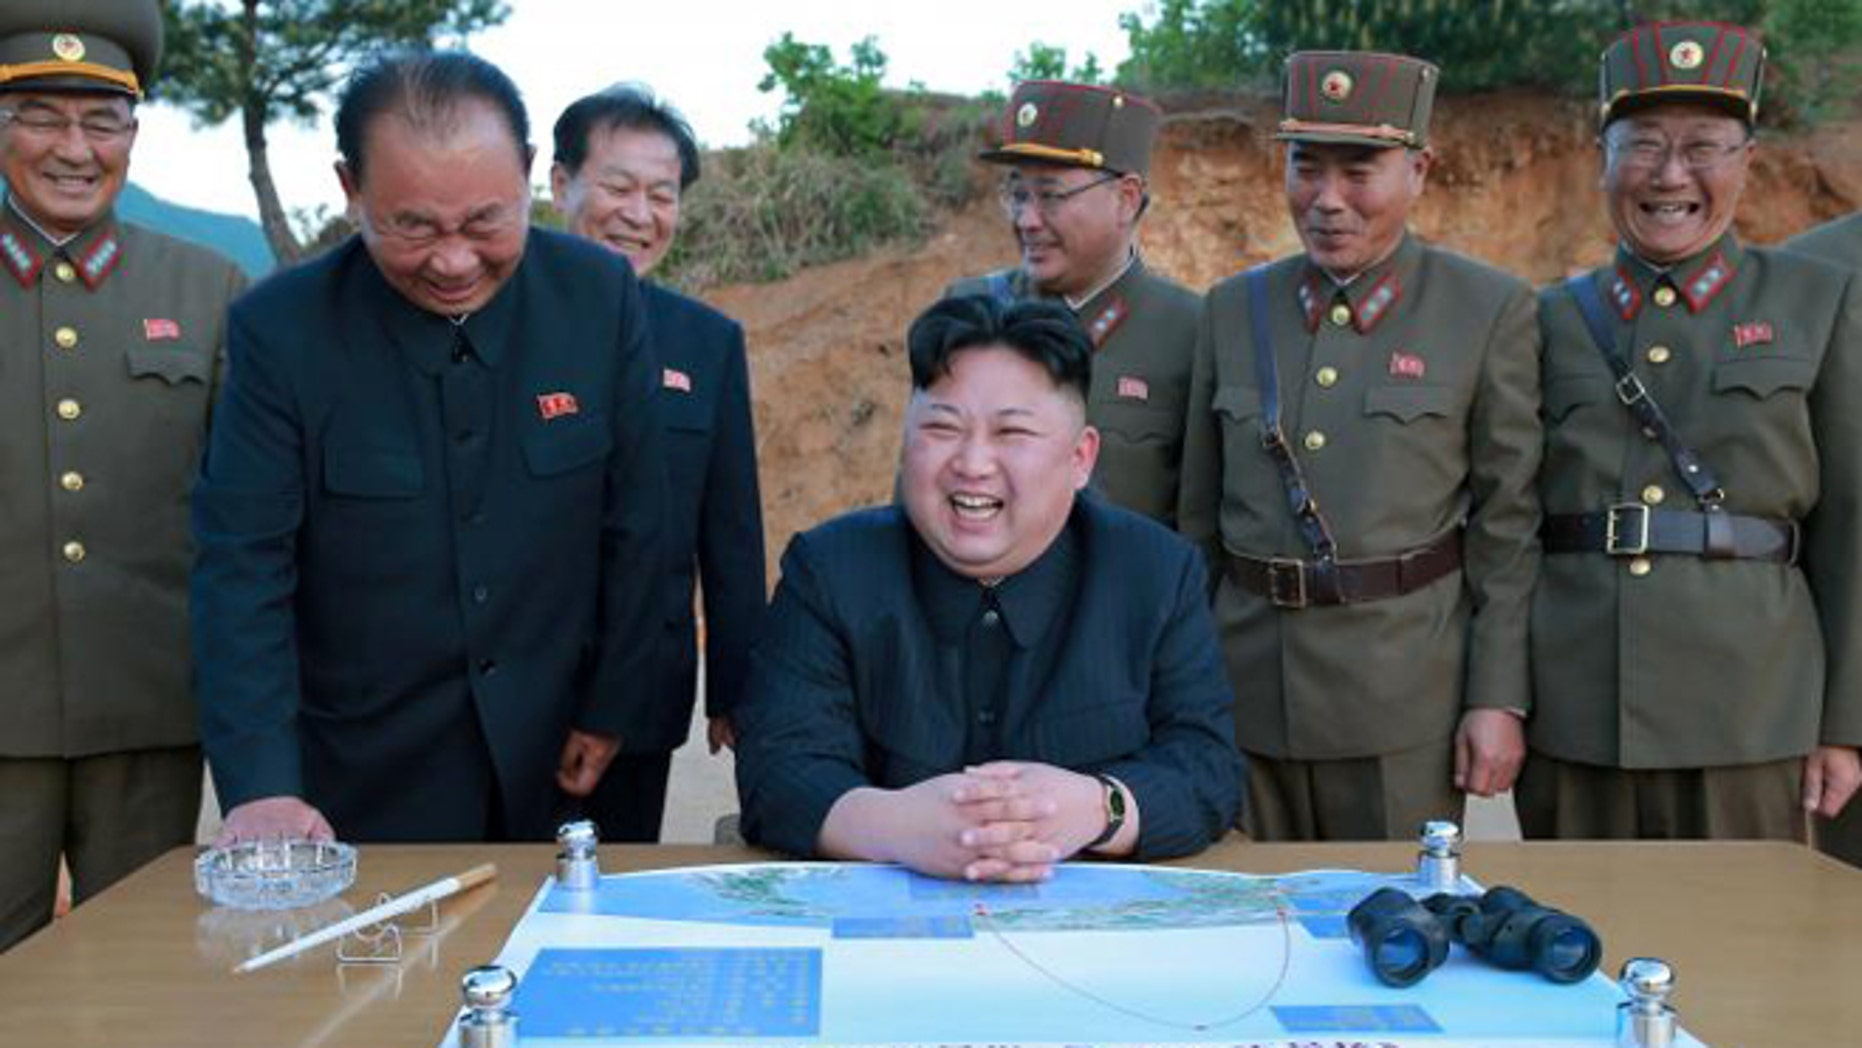 : North Korean leader Kim Jong Un reacts during the long-range strategic ballistic rocket test launch with Ri Pyong Chol (2nd L), Kim Jong Sik (C) and Jang Chang Ha (2nd R).